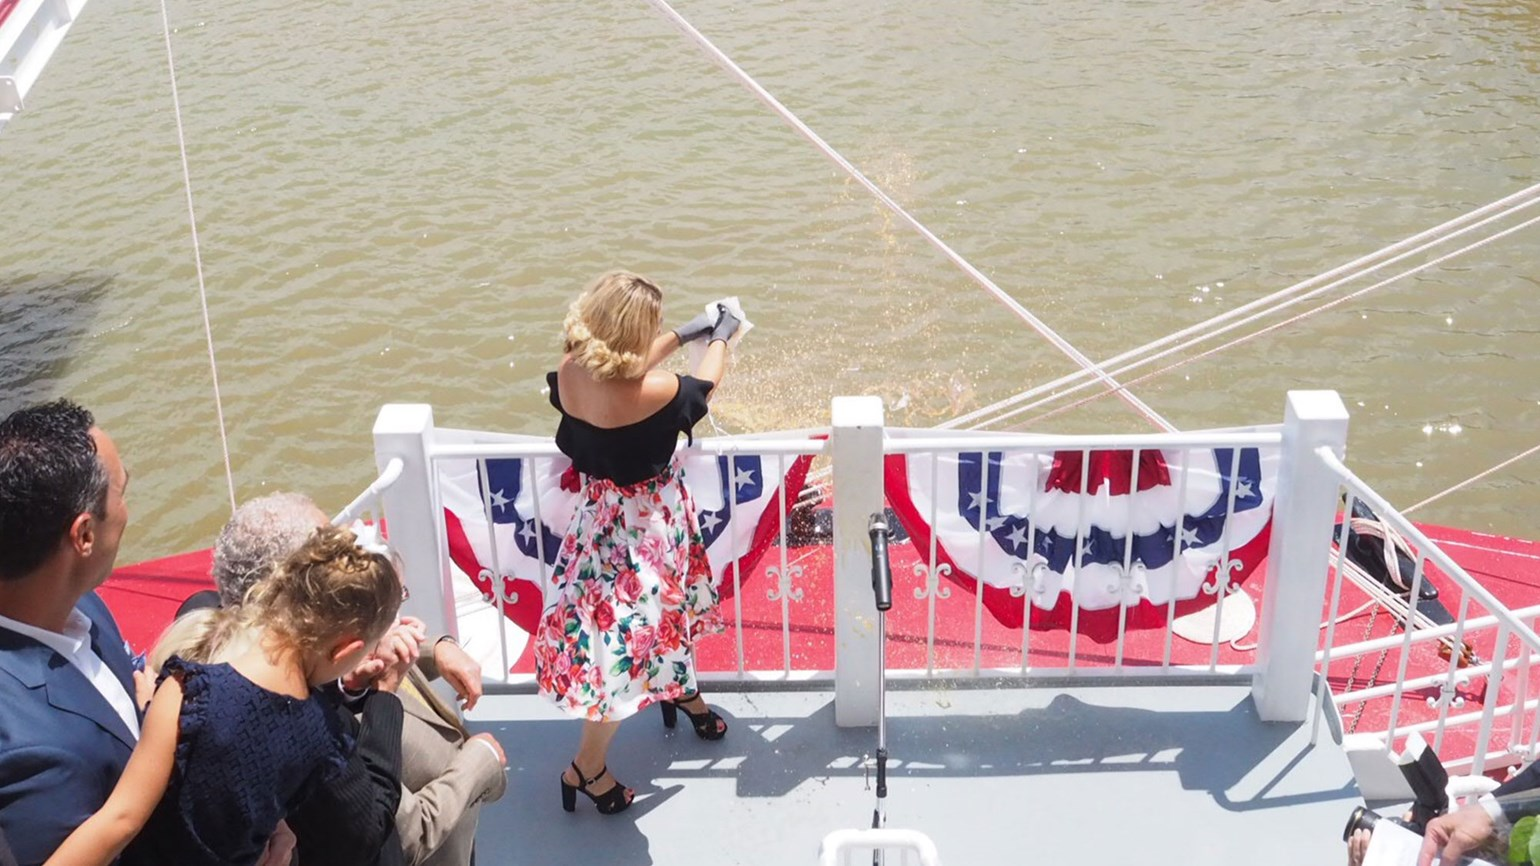 American Duchess brings more upscale experience to Mississippi cruising